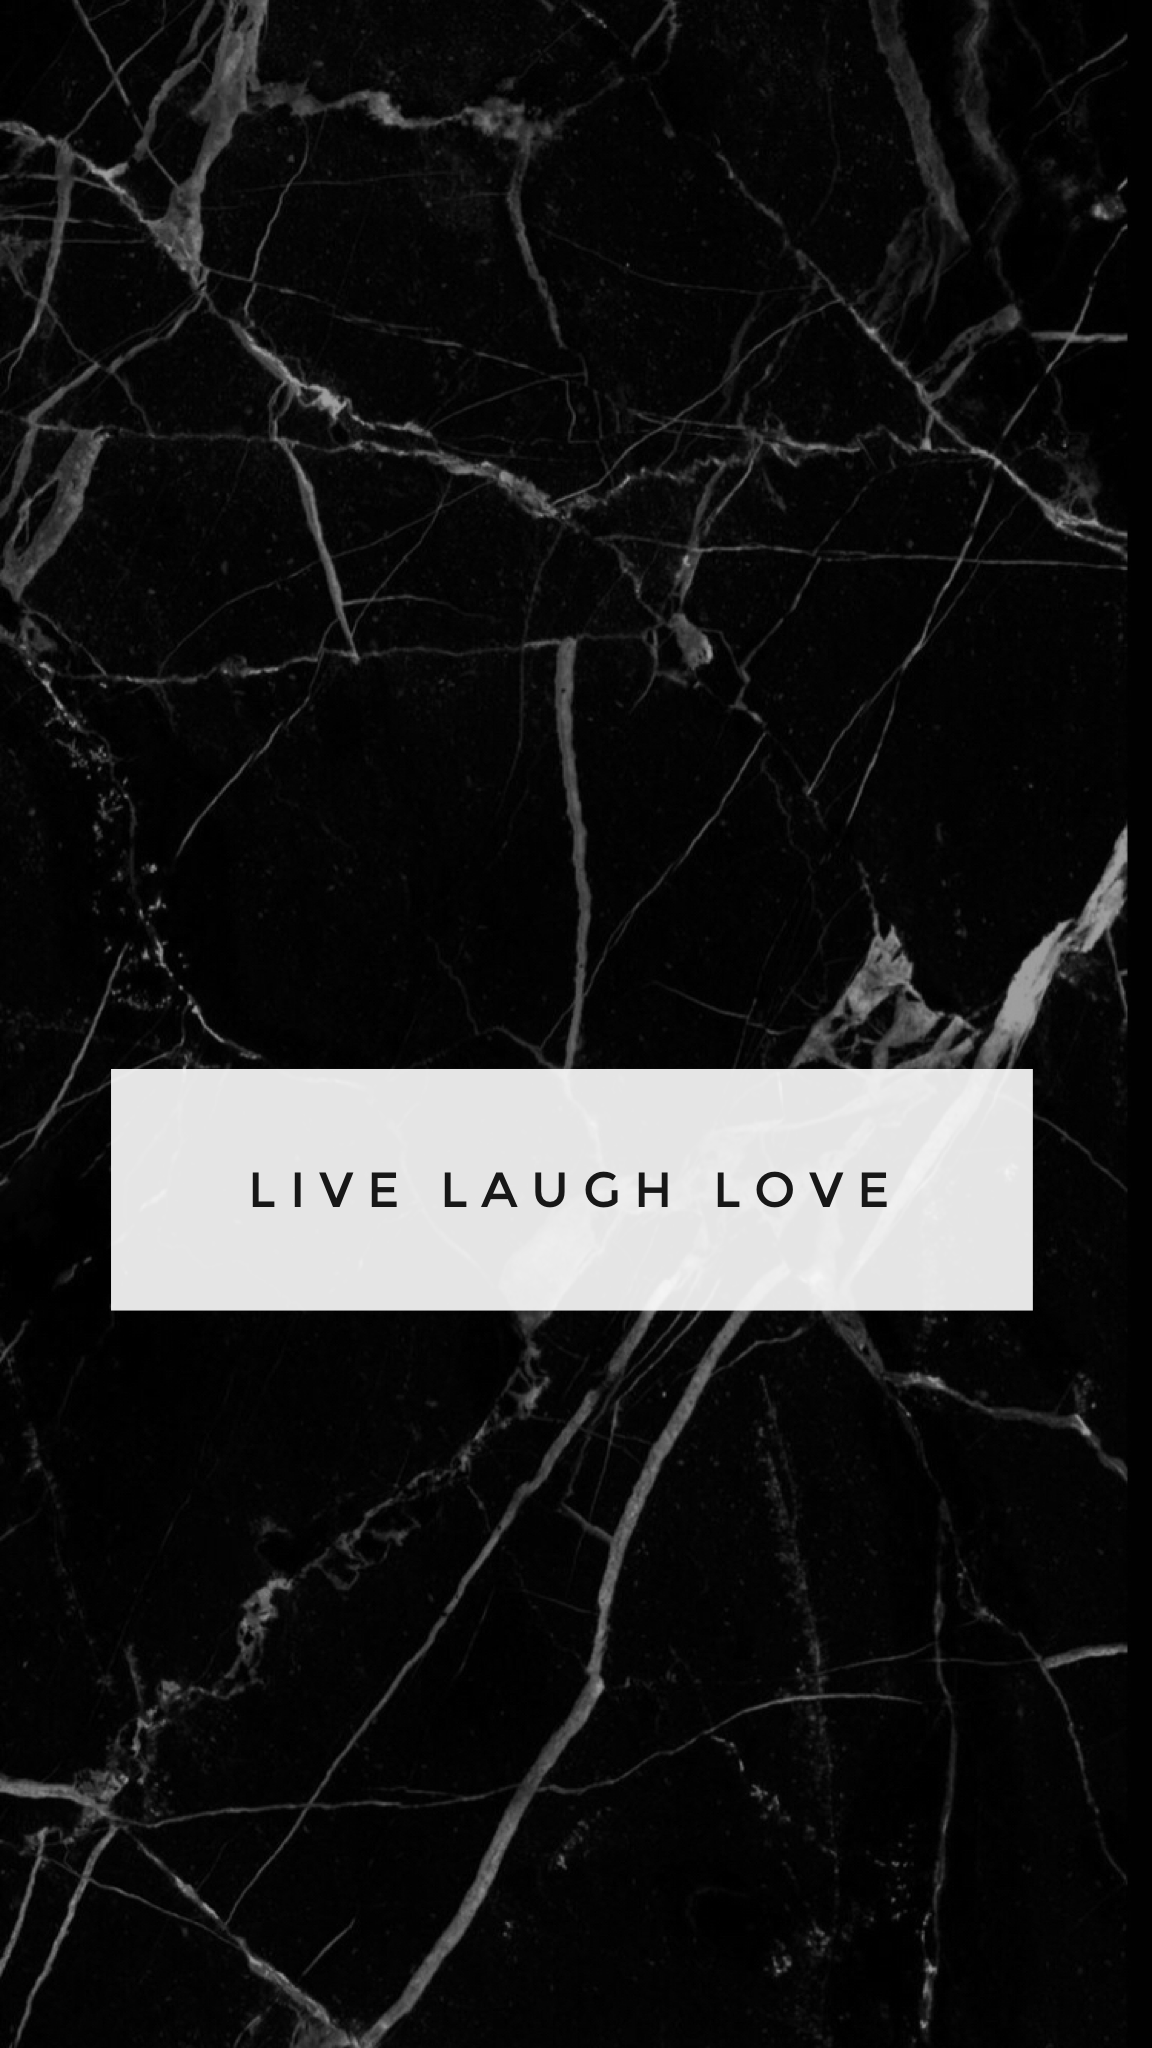 Wallpaper Wall Background Iphone Android Minimal Simple Quote Hd Black White Marble Fonovye Uzory Ikonki Oboi